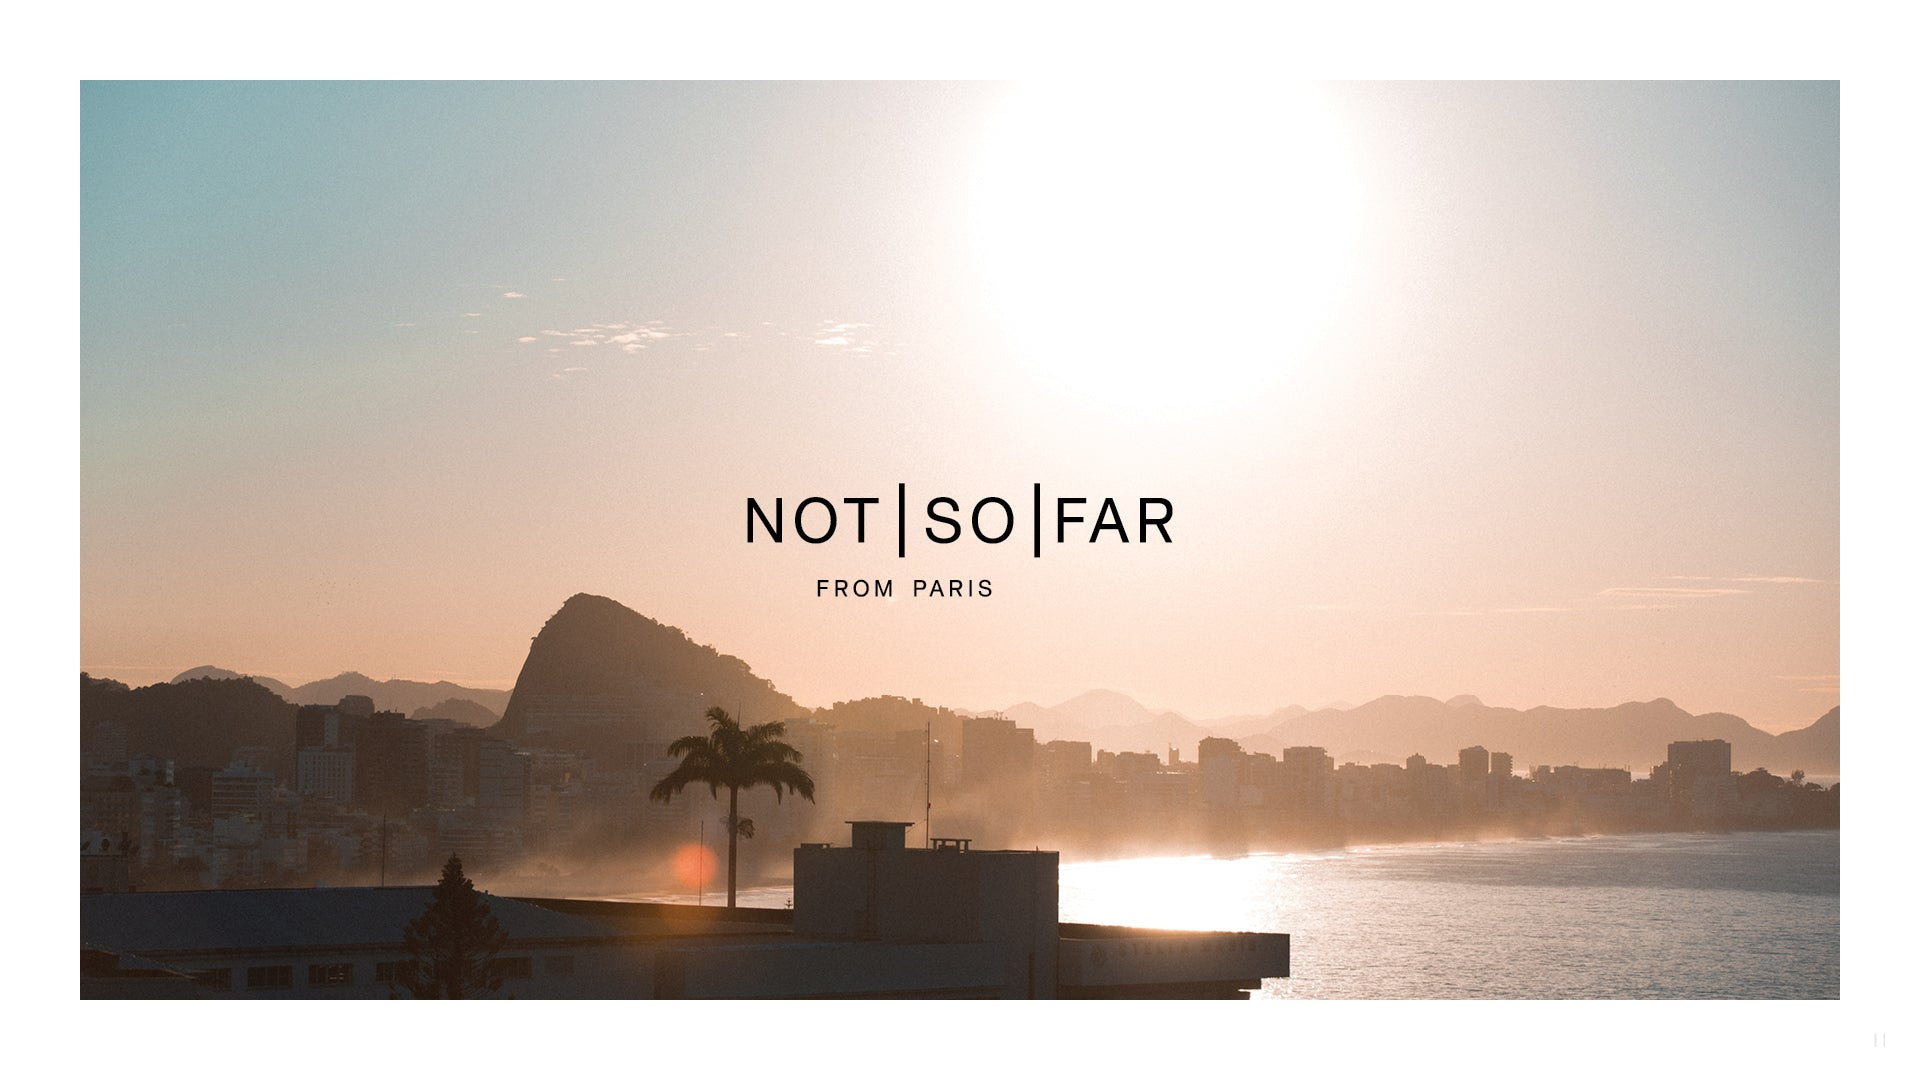 NOT SO FAR RIO